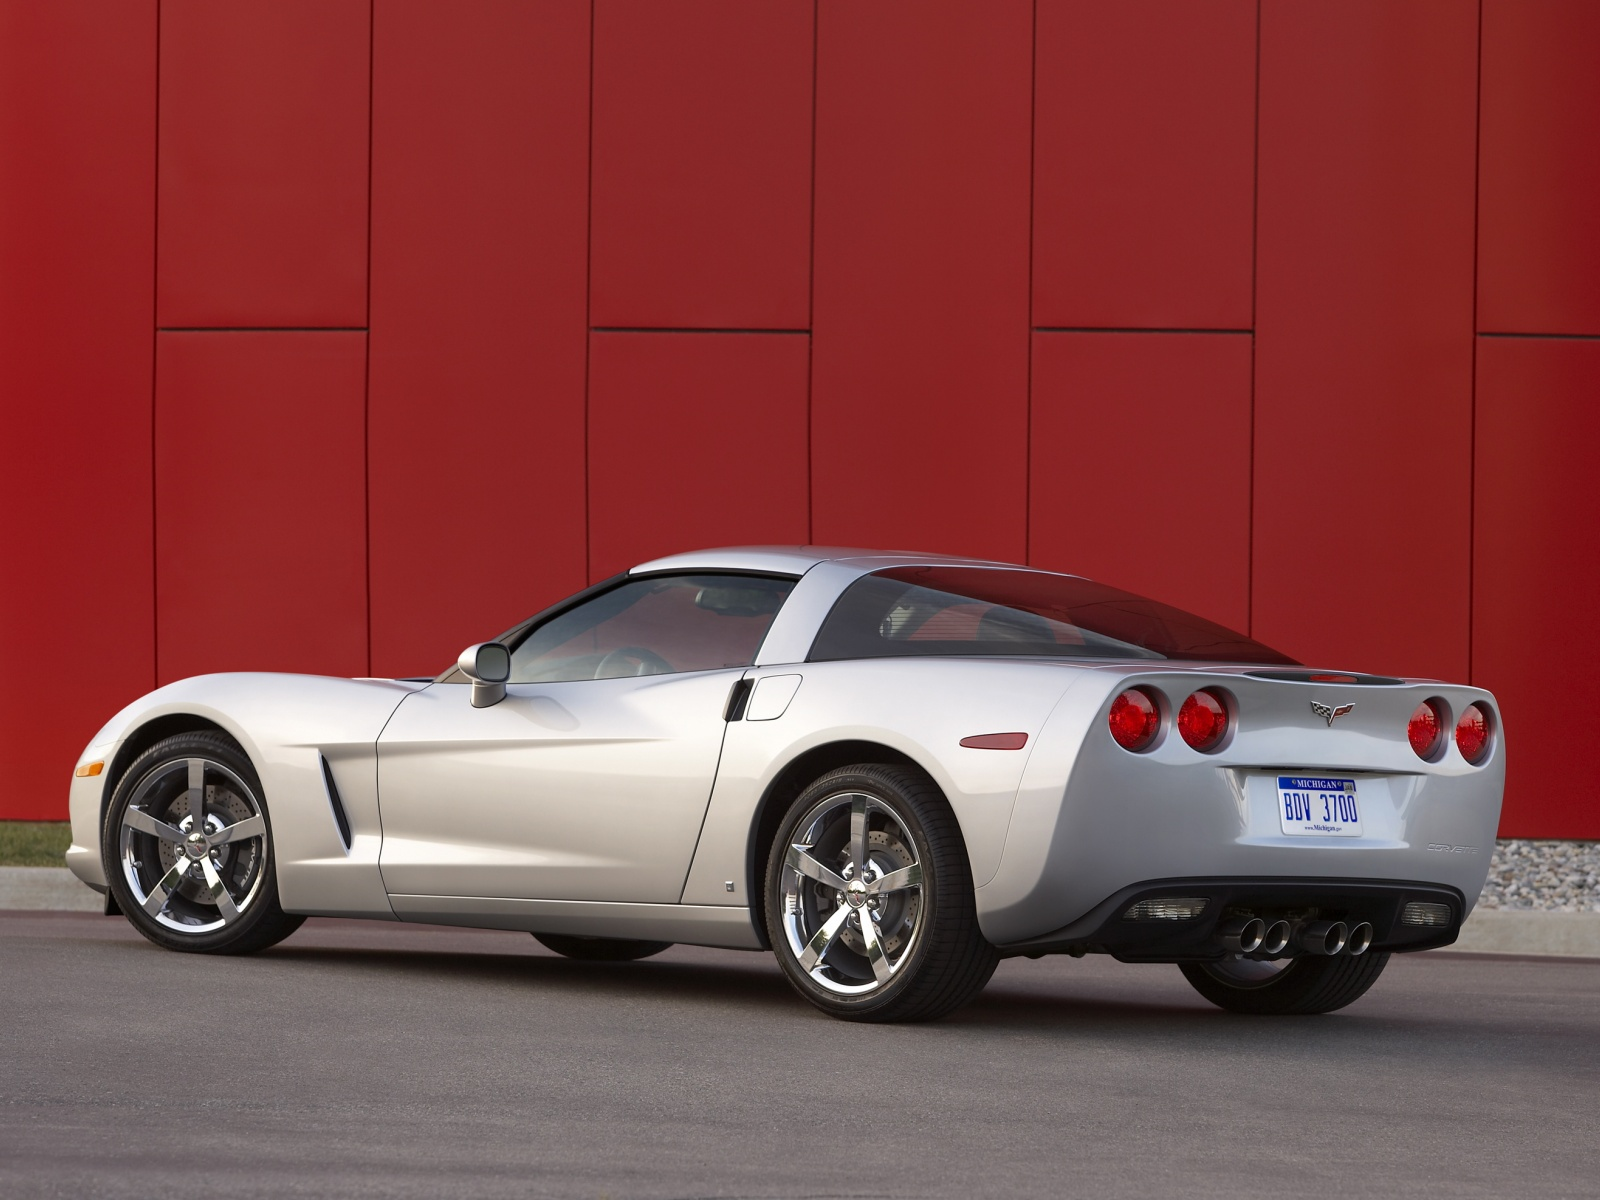 2009 chevrolet corvette motor desktop. Black Bedroom Furniture Sets. Home Design Ideas